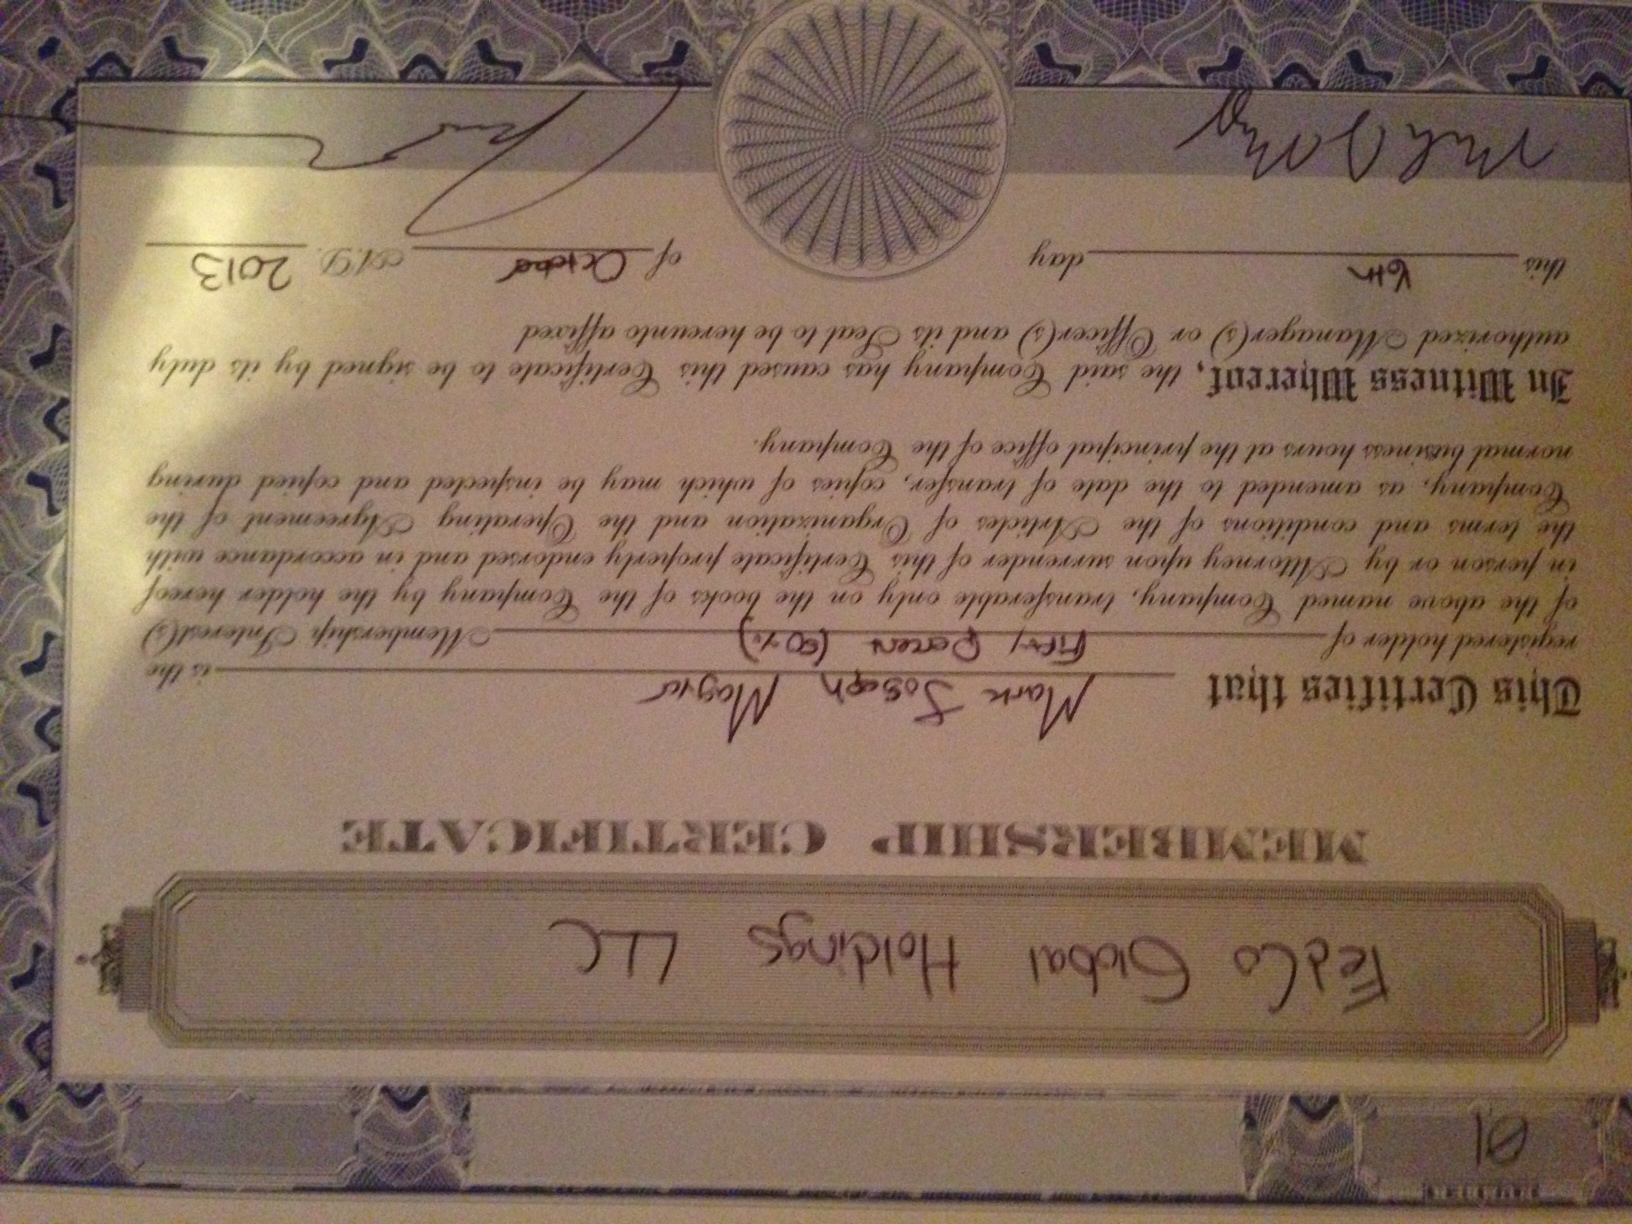 How to fill out an llc membership certificate i am filling out llc membership certificates and was wondering a where both members of the llc sign the document and b what the back of the document is xflitez Gallery